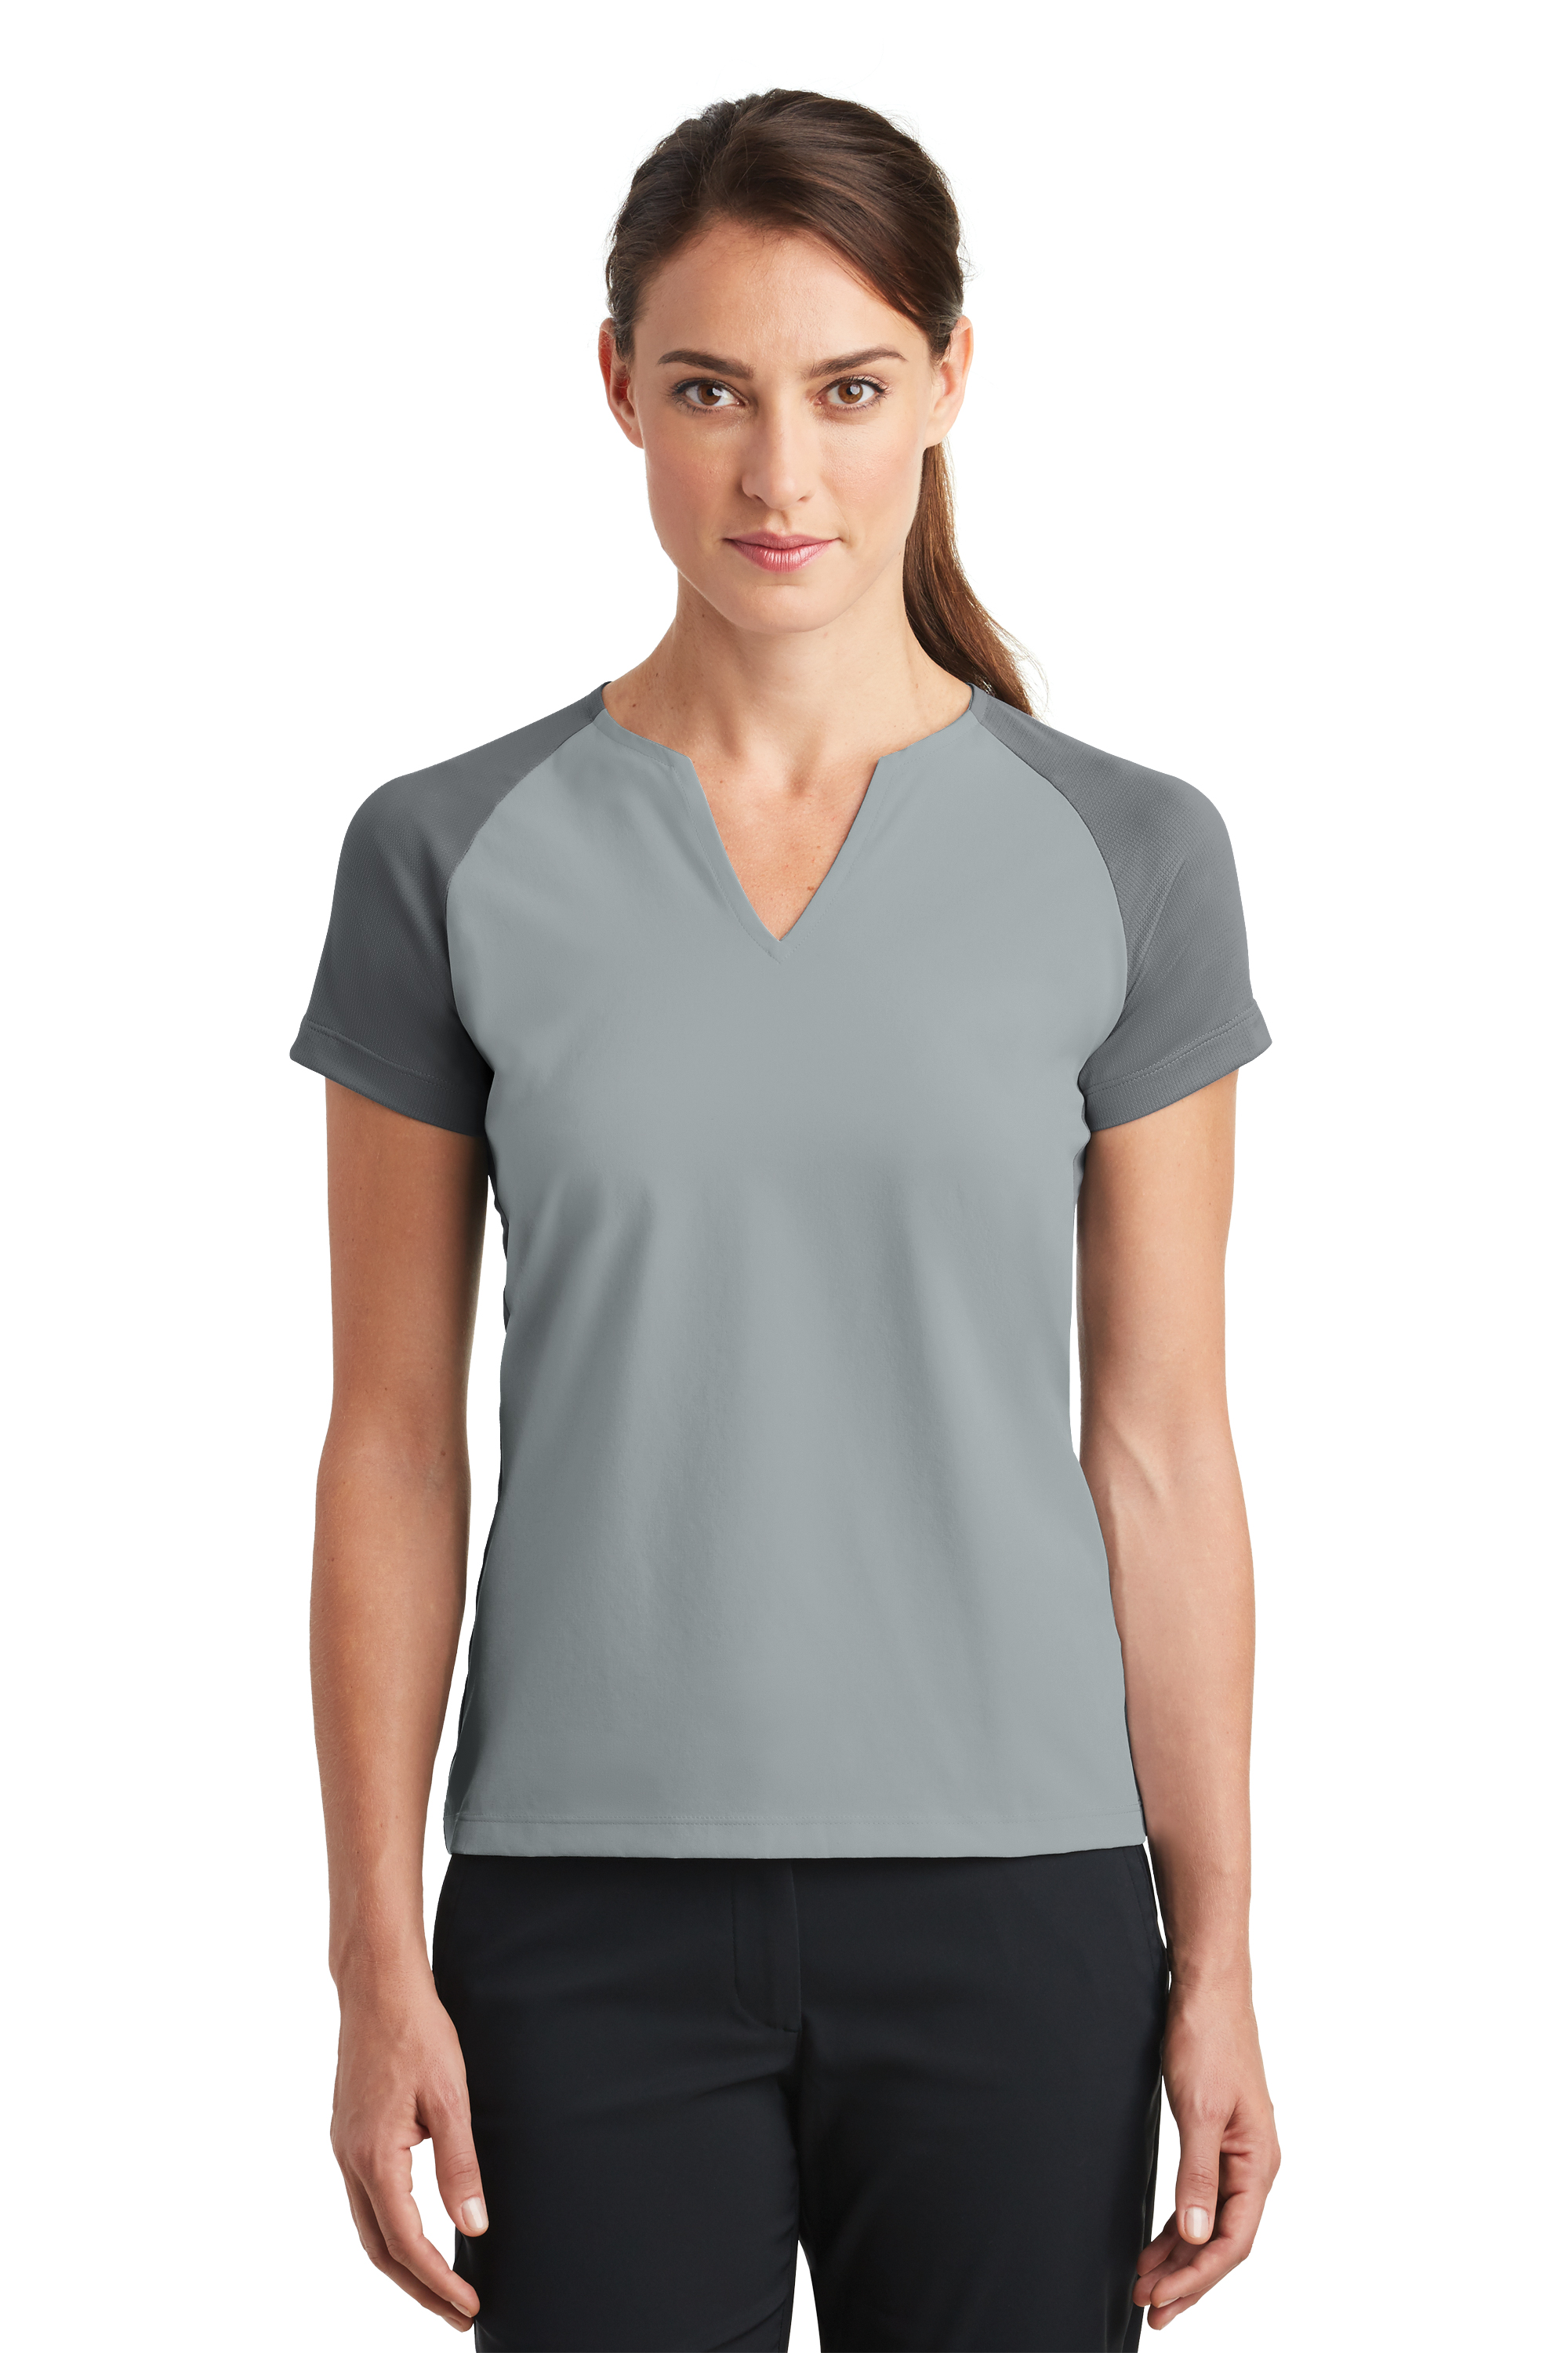 351580abf44 Nike Golf Women s Dri-FIT Stretch Woven V-Neck Top. 838960.